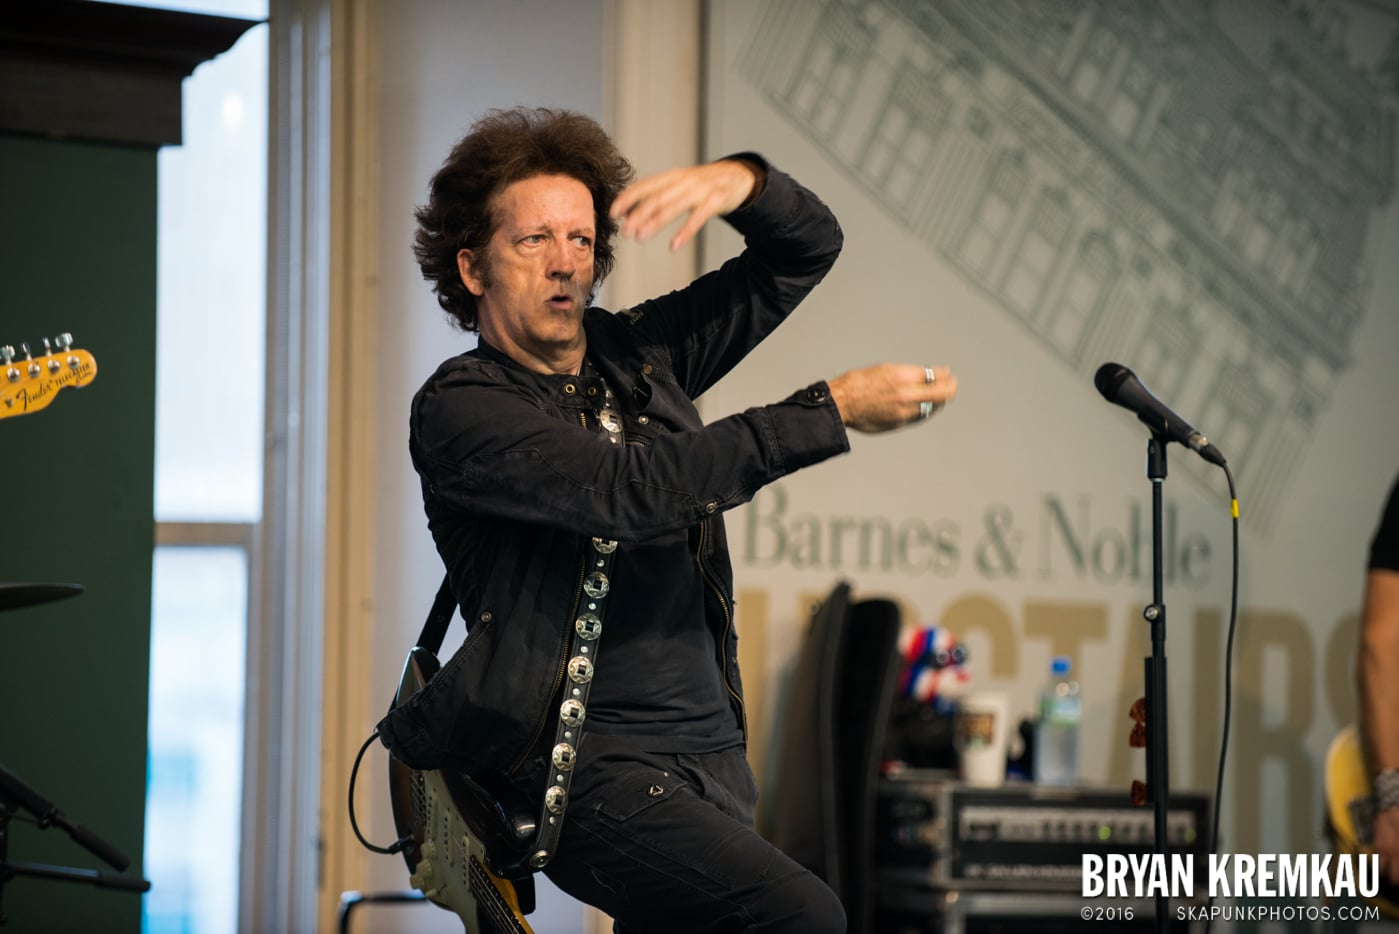 Willie Nile @ Barnes & Noble Union Square, NYC - June 25th 2013 (8)